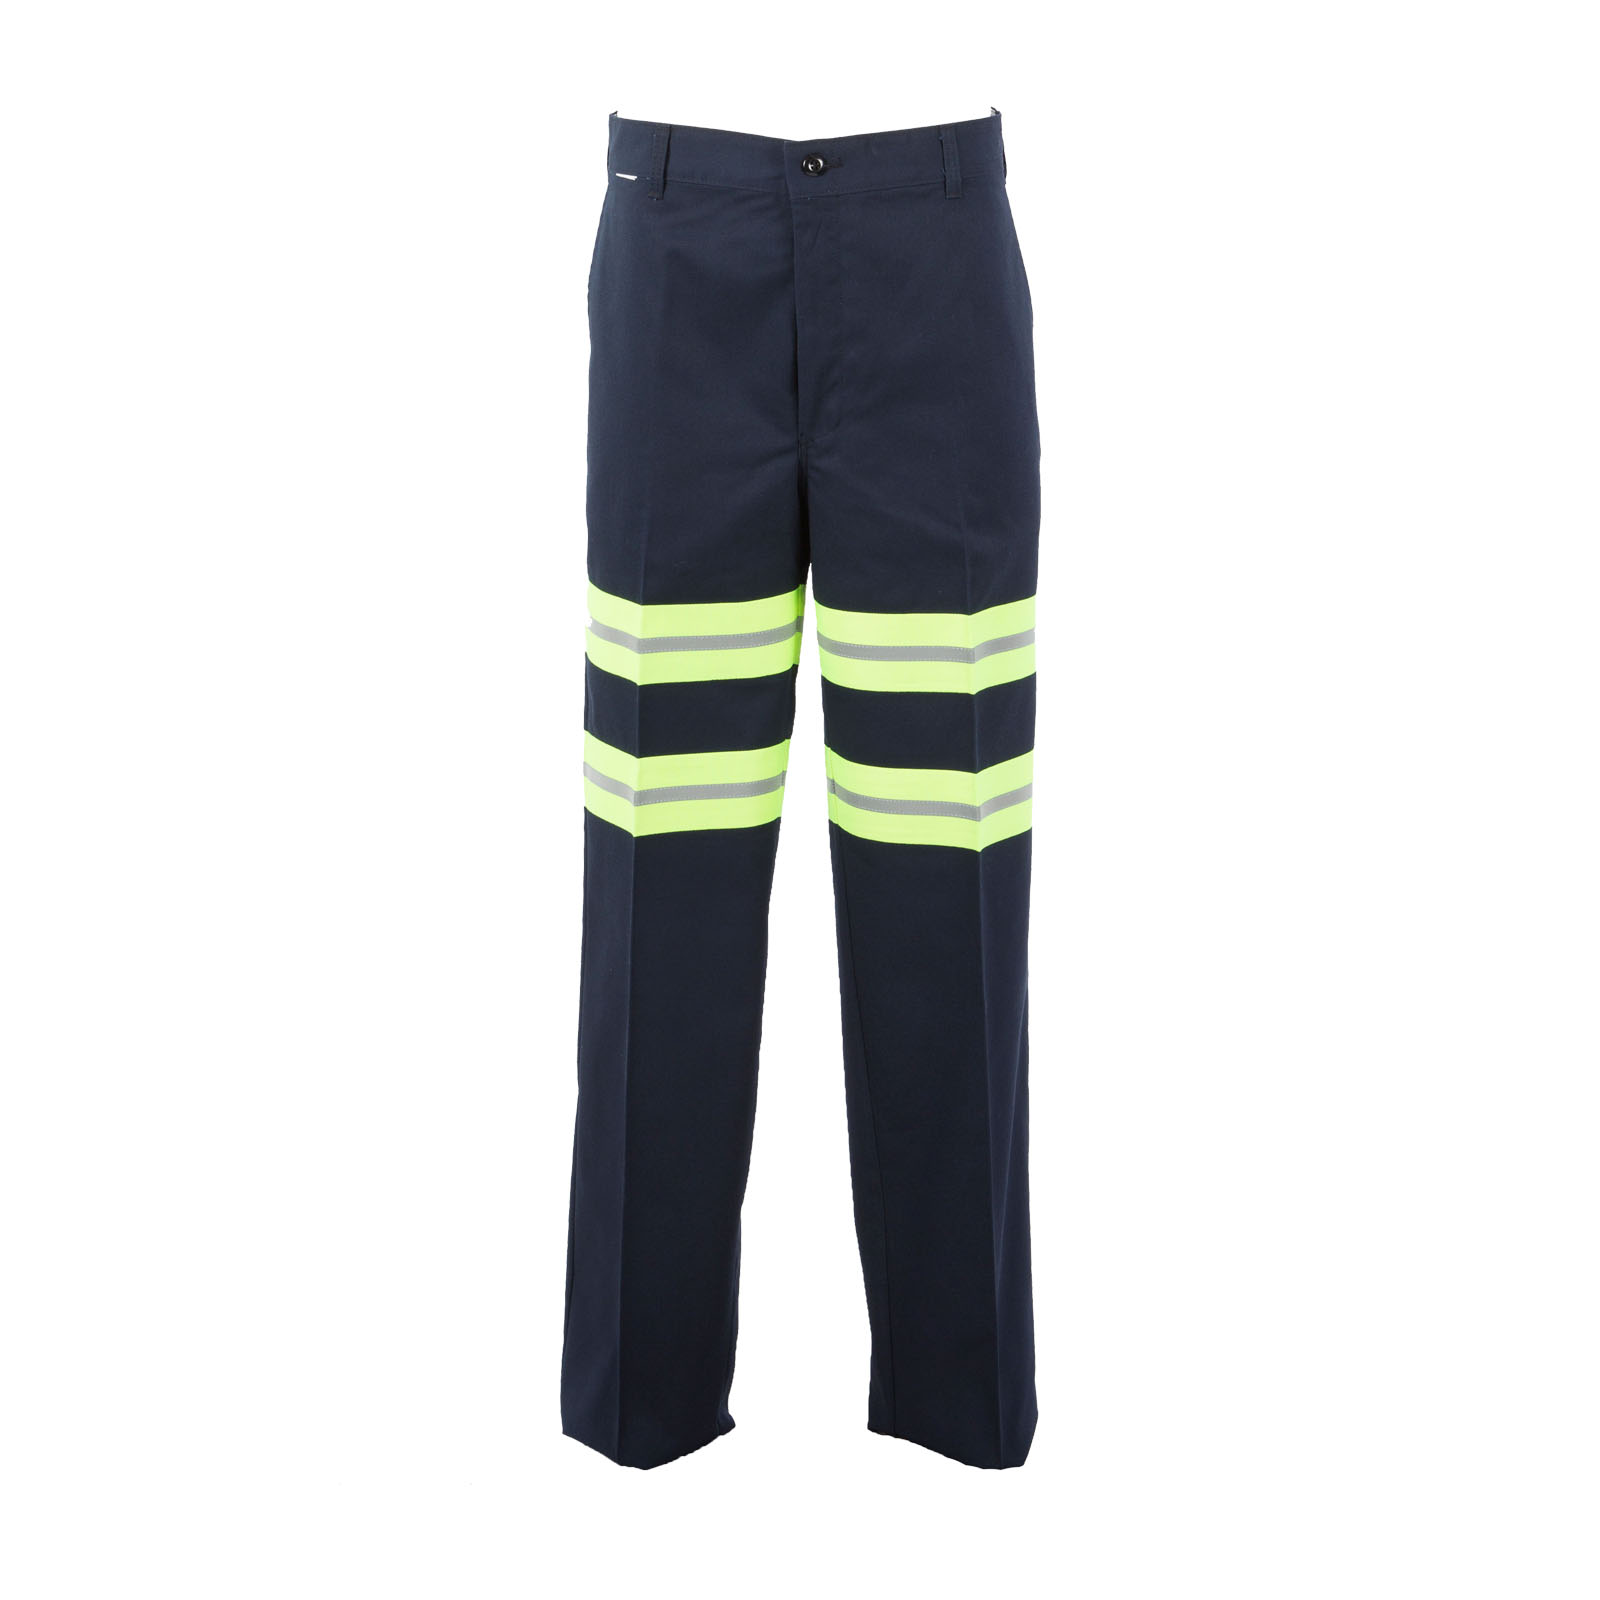 65/35 Enhanced Visibility Women's Comfort Fit Industrial Flex-Waist Work Pant-Pinnacle WorX